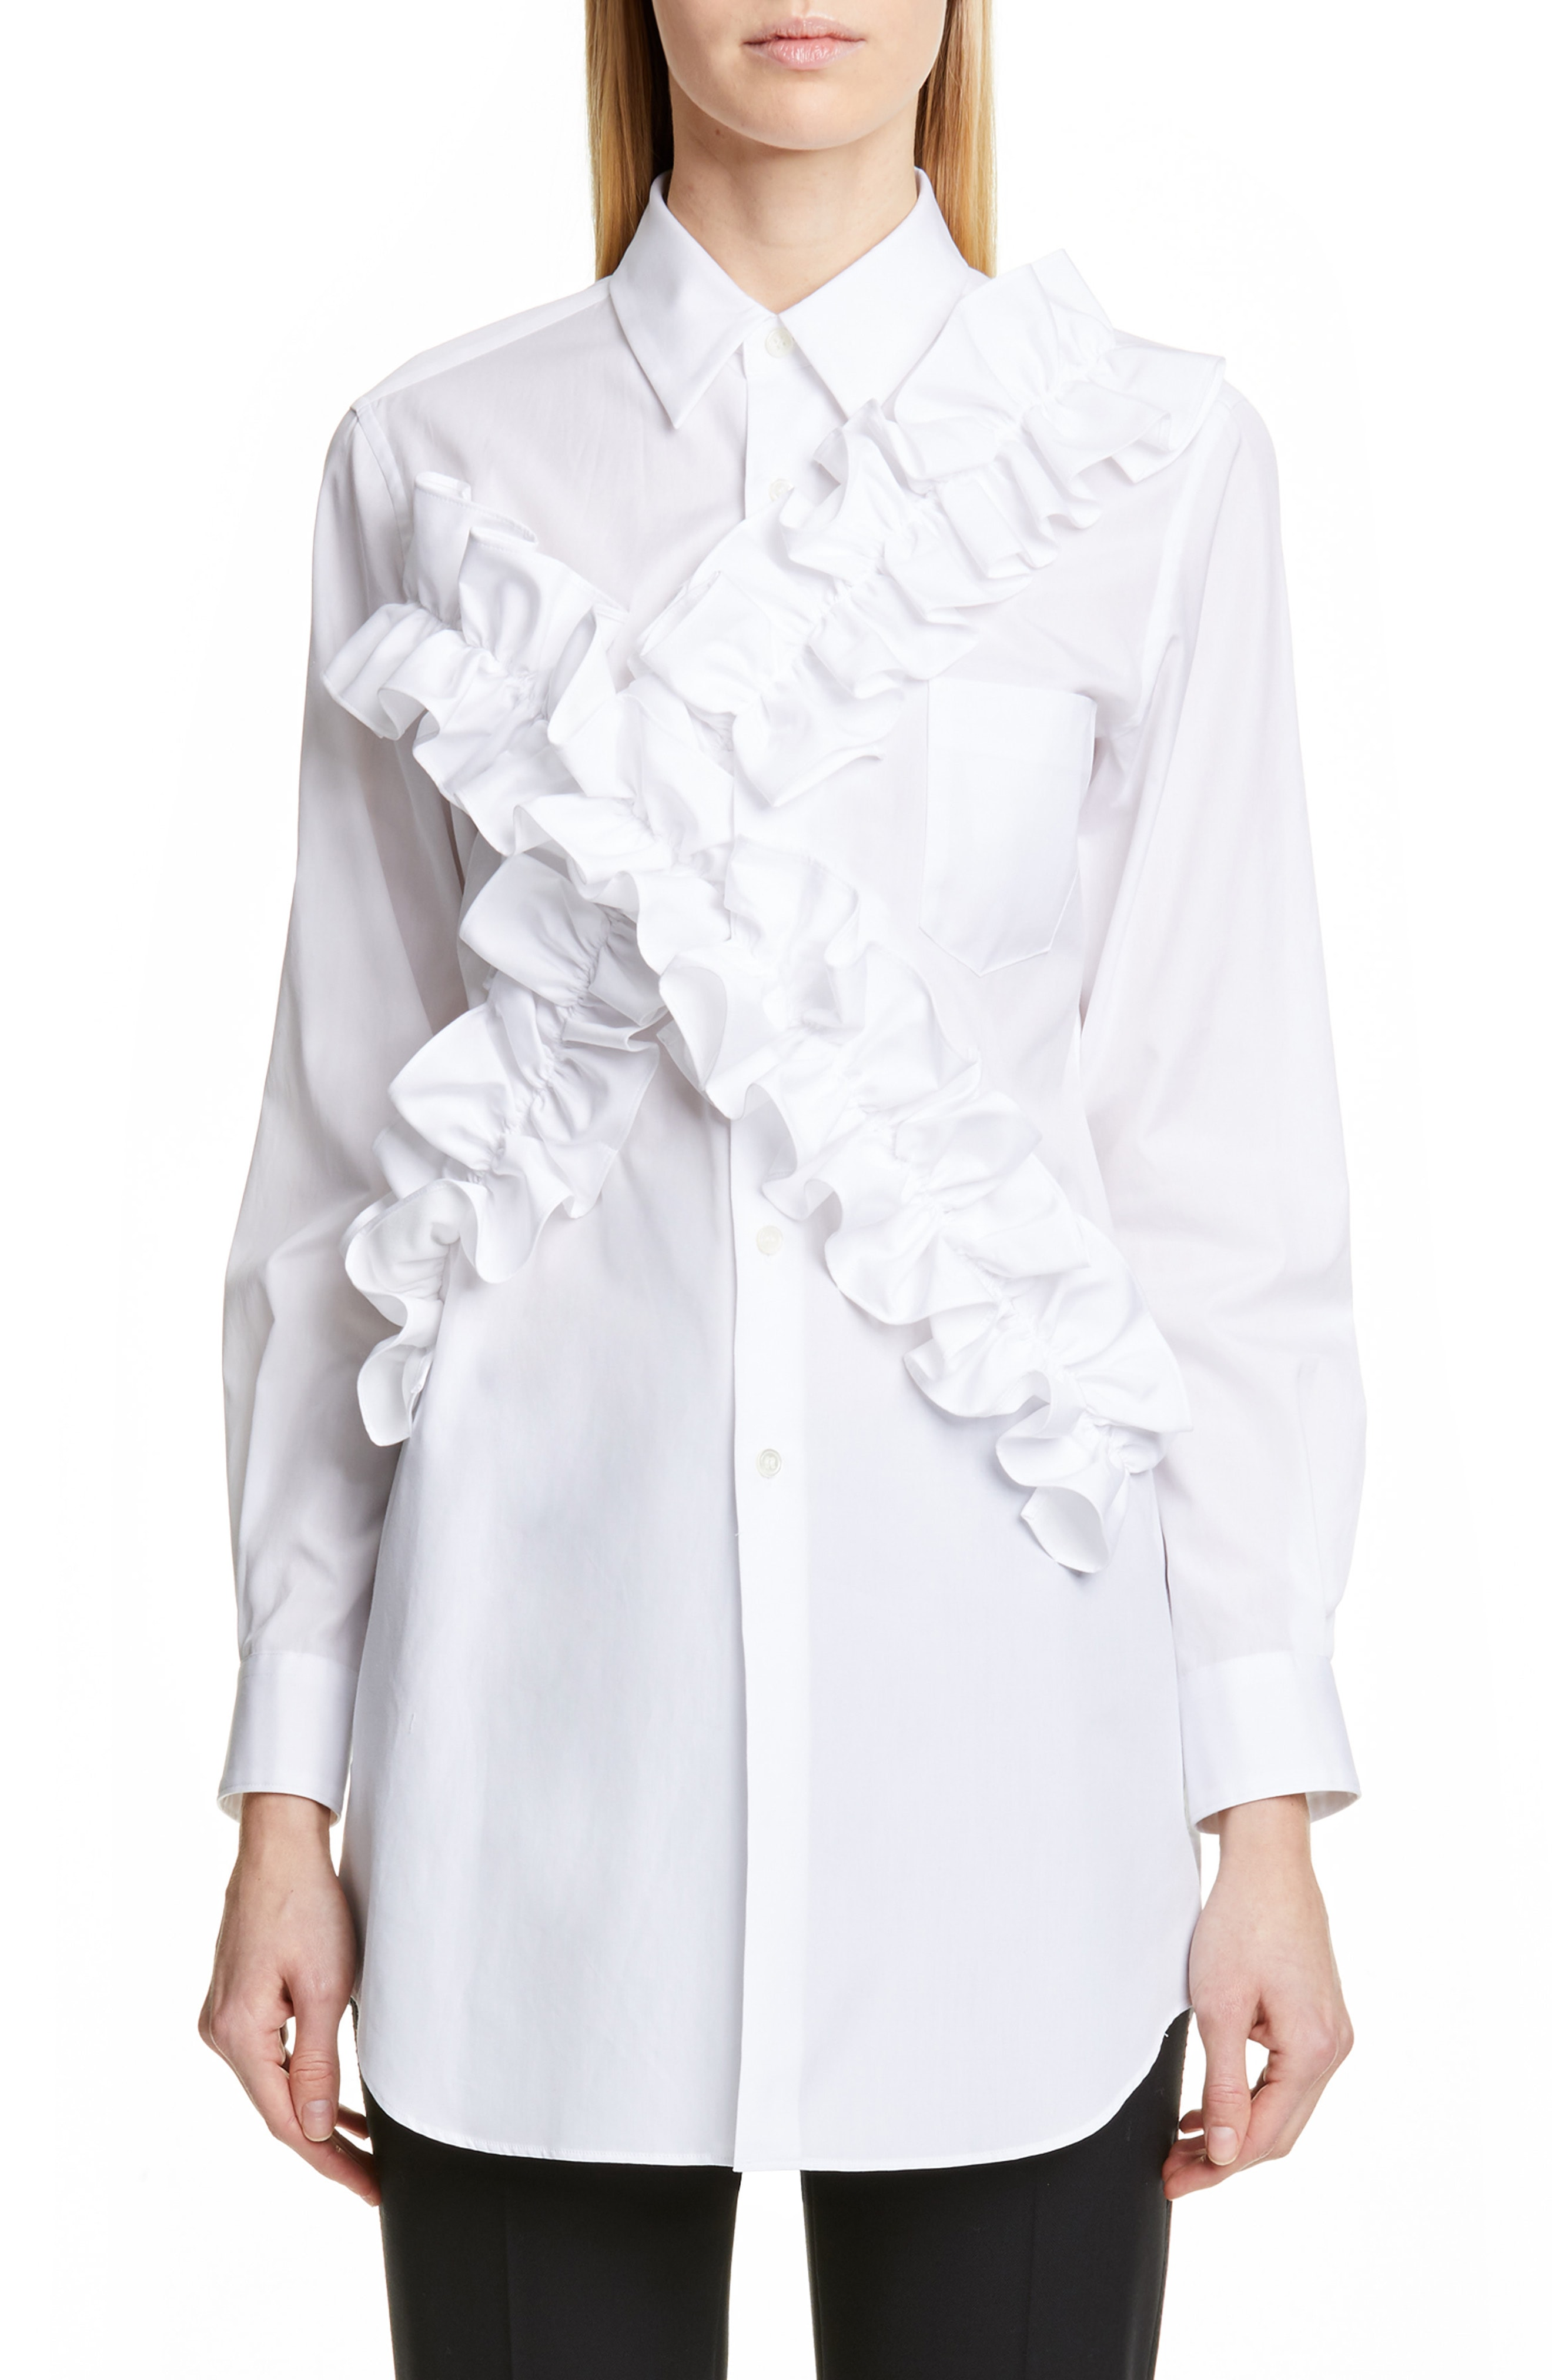 Ruffle Blouses in White